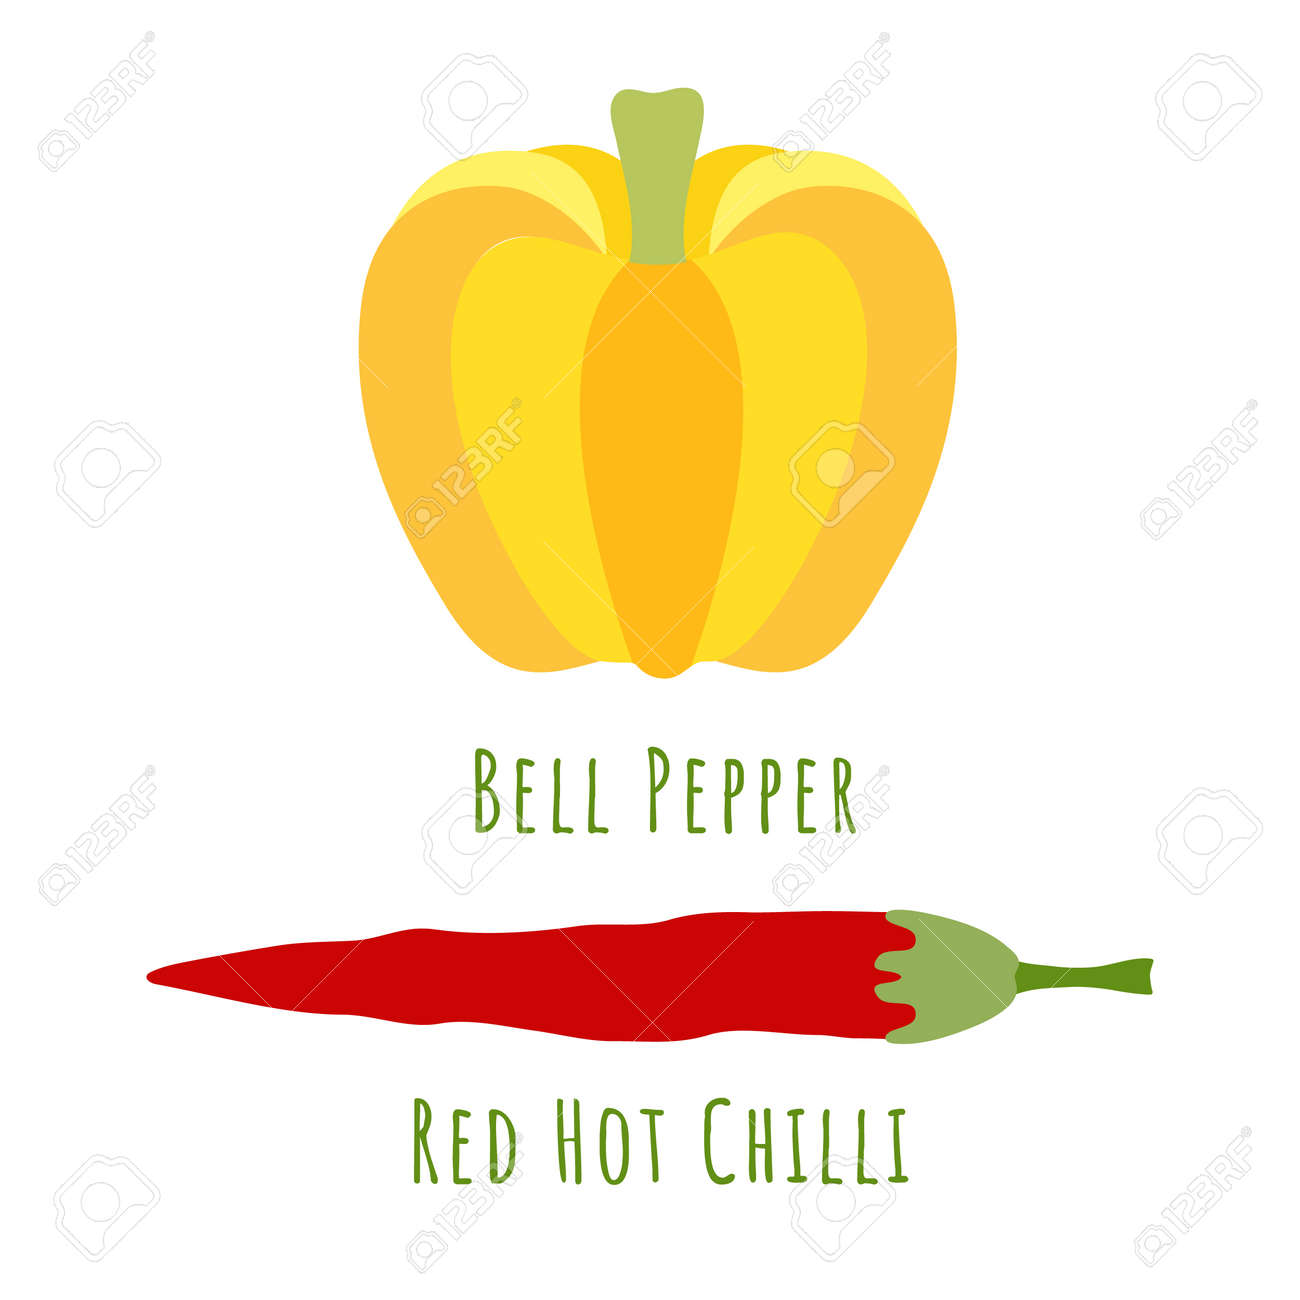 Bell pepper and red chili pepper isolated on white and made in flat style. No outlined Symmetrical shapes filled with color only. Vector illustration for product design, web and print usage. - 168336256